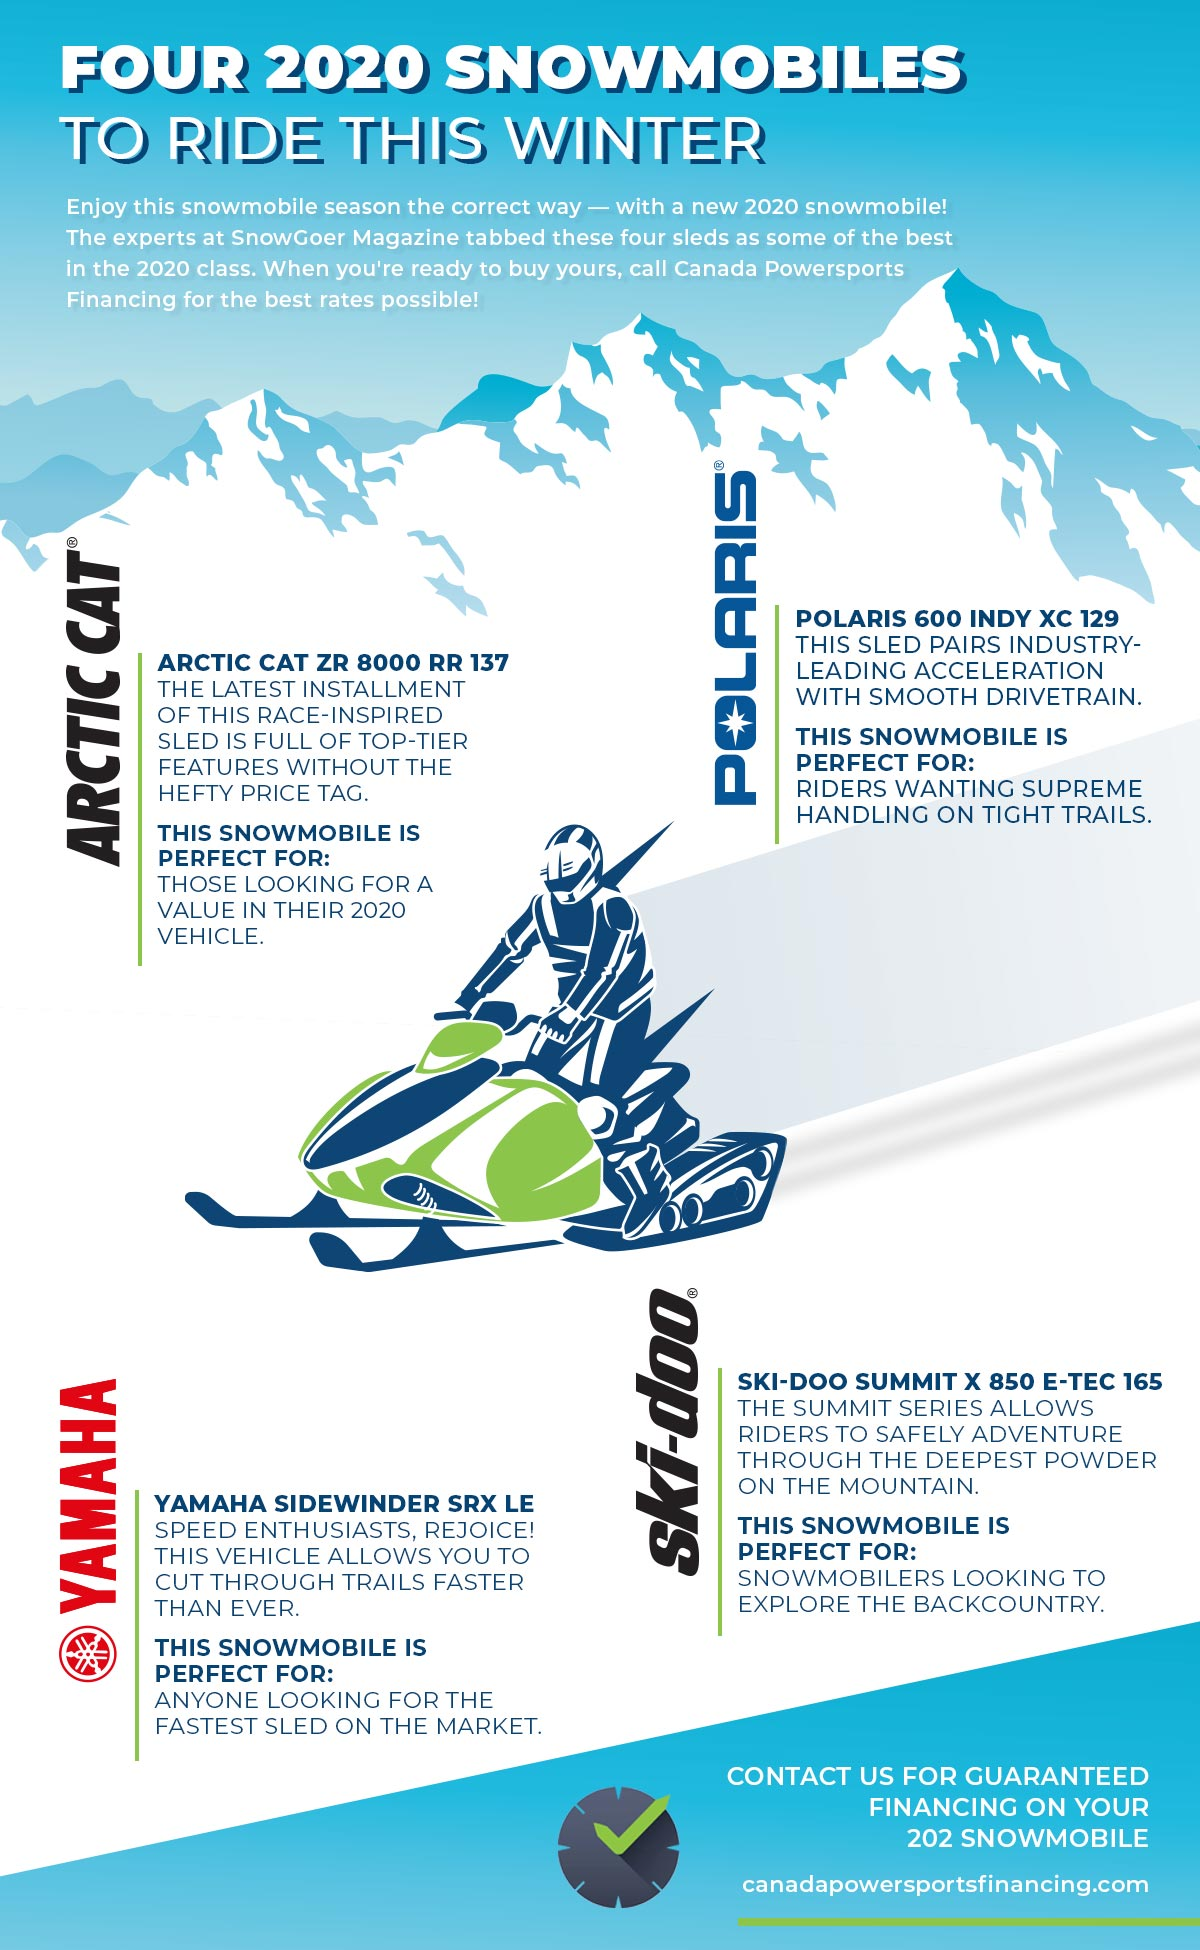 Four Snowmobiles to Finance in 2020 - Canada Powersports Financing